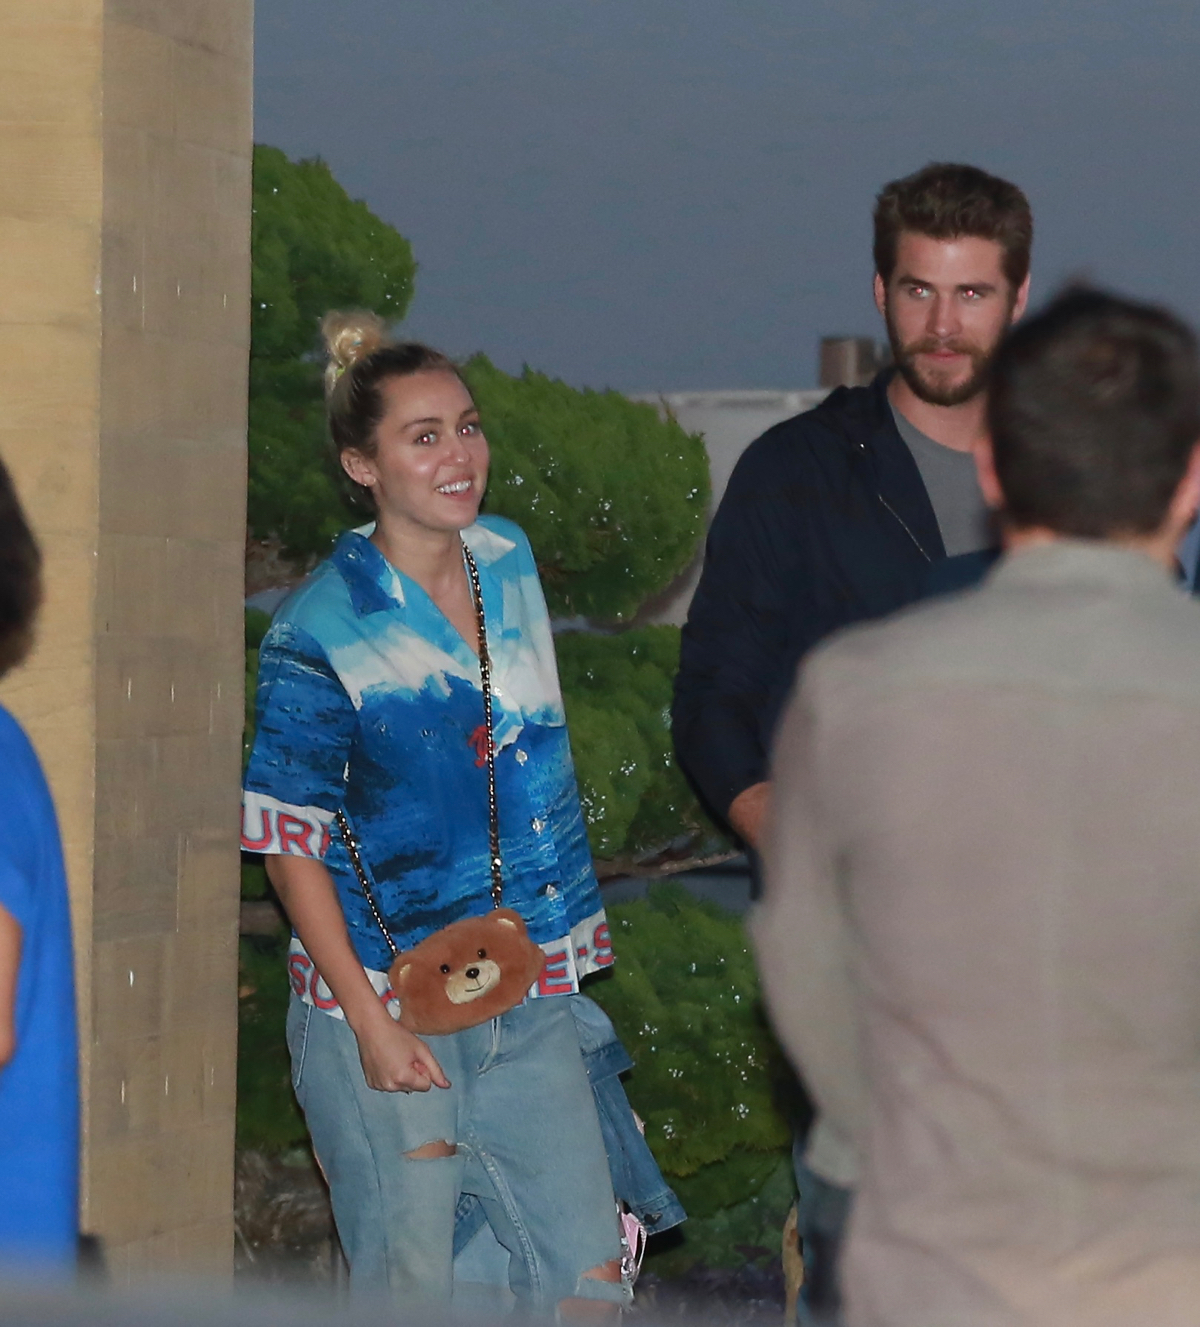 Miley Cyrus and Liam Hemsworth went out to lunch and had a great time pissing off paparazzi